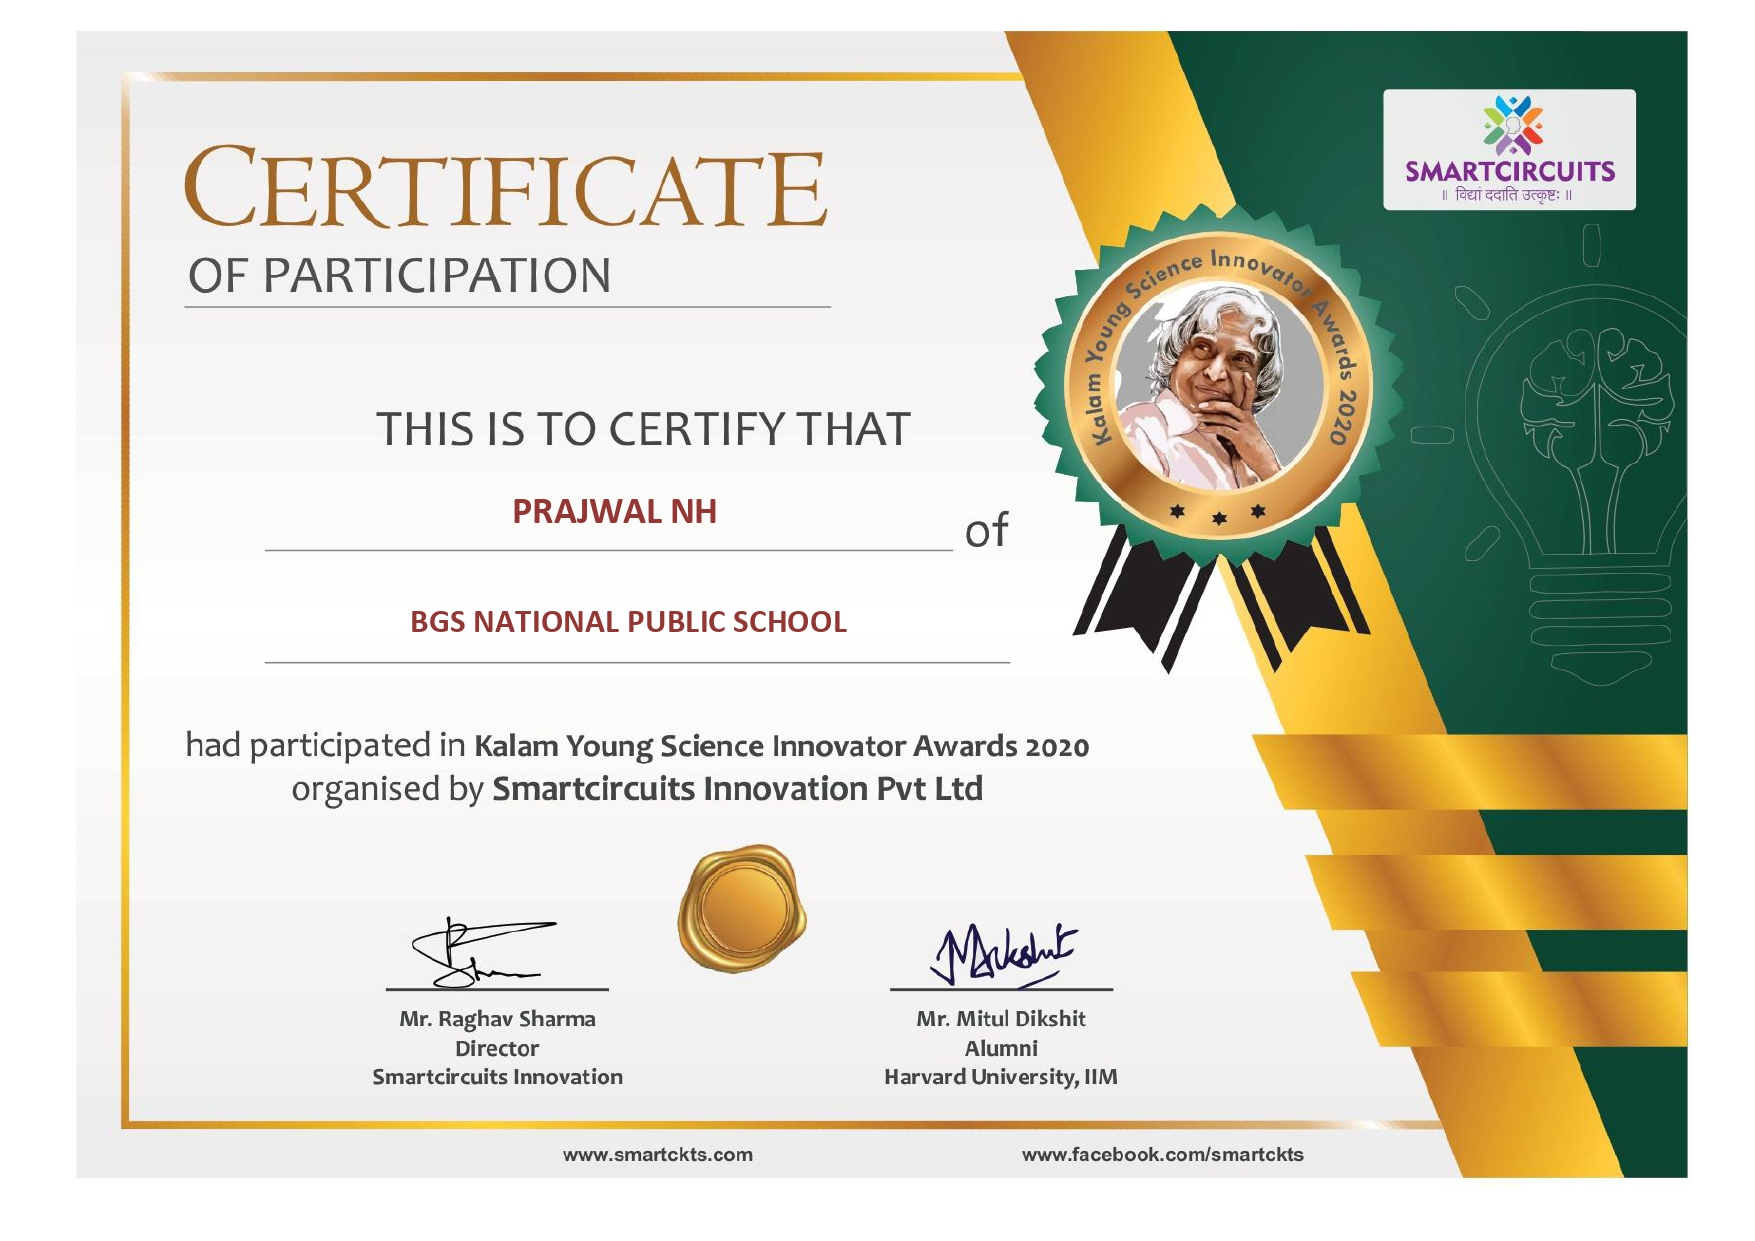 Participation Certificate for KYSI